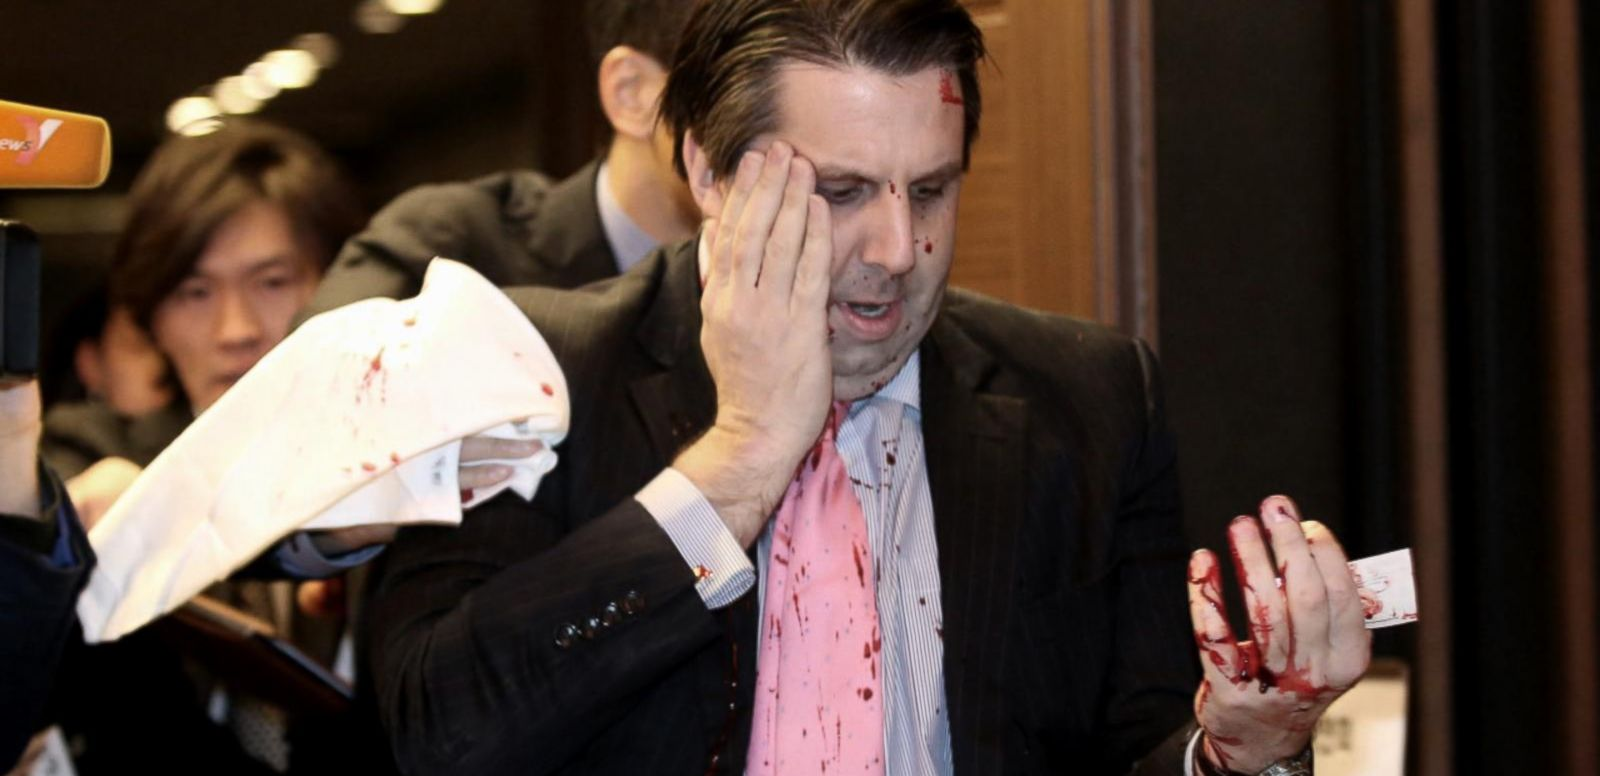 VIDEO: Man With 10-Inch Knife Slashes US Ambassador Mark Lippert